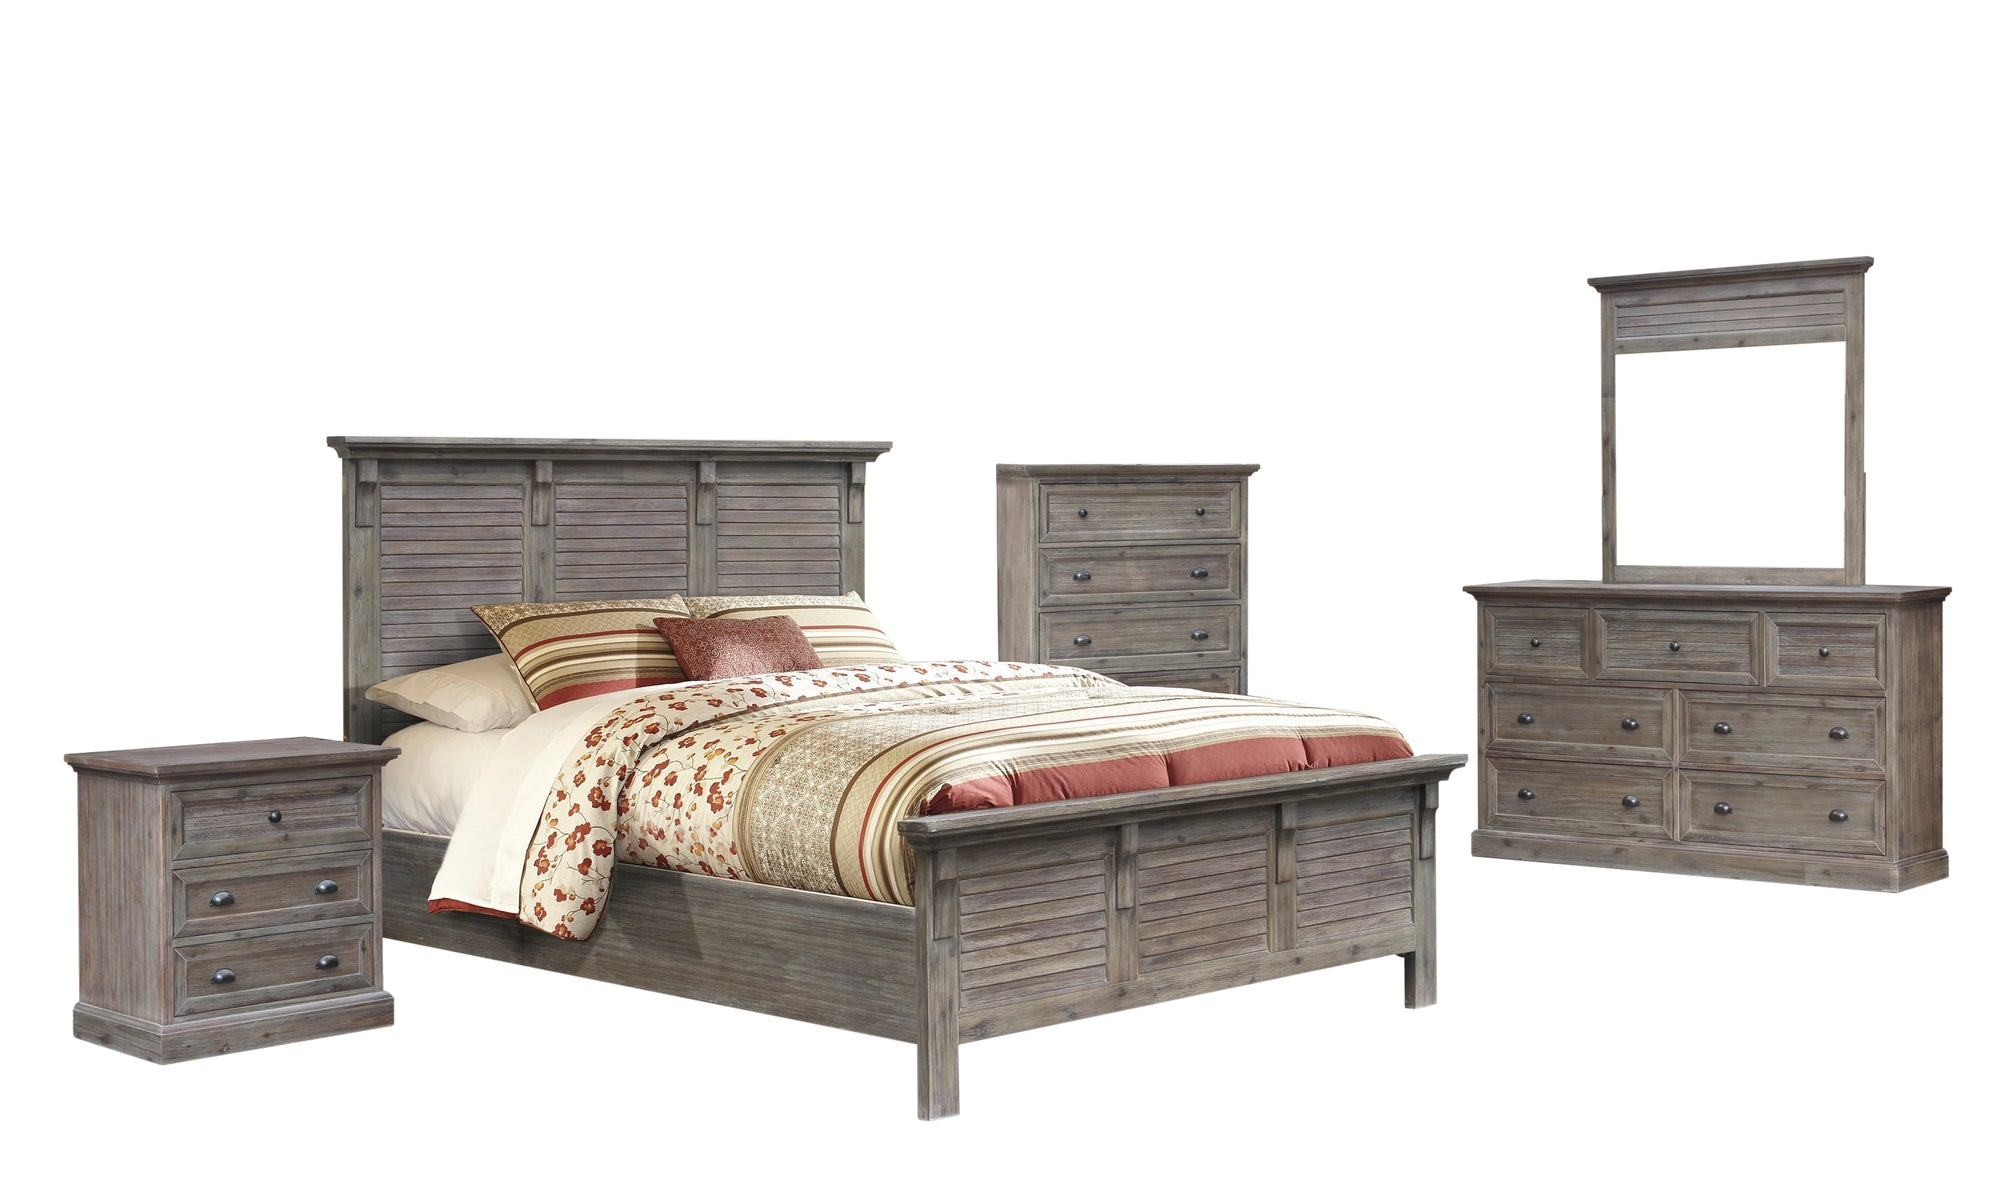 Sunset Trading Solstice Grey 5 Piece Queen Bedroom Set by Sunset Trading - HomeKingz.com - Online furniture shop with the best prices & premium customer support!